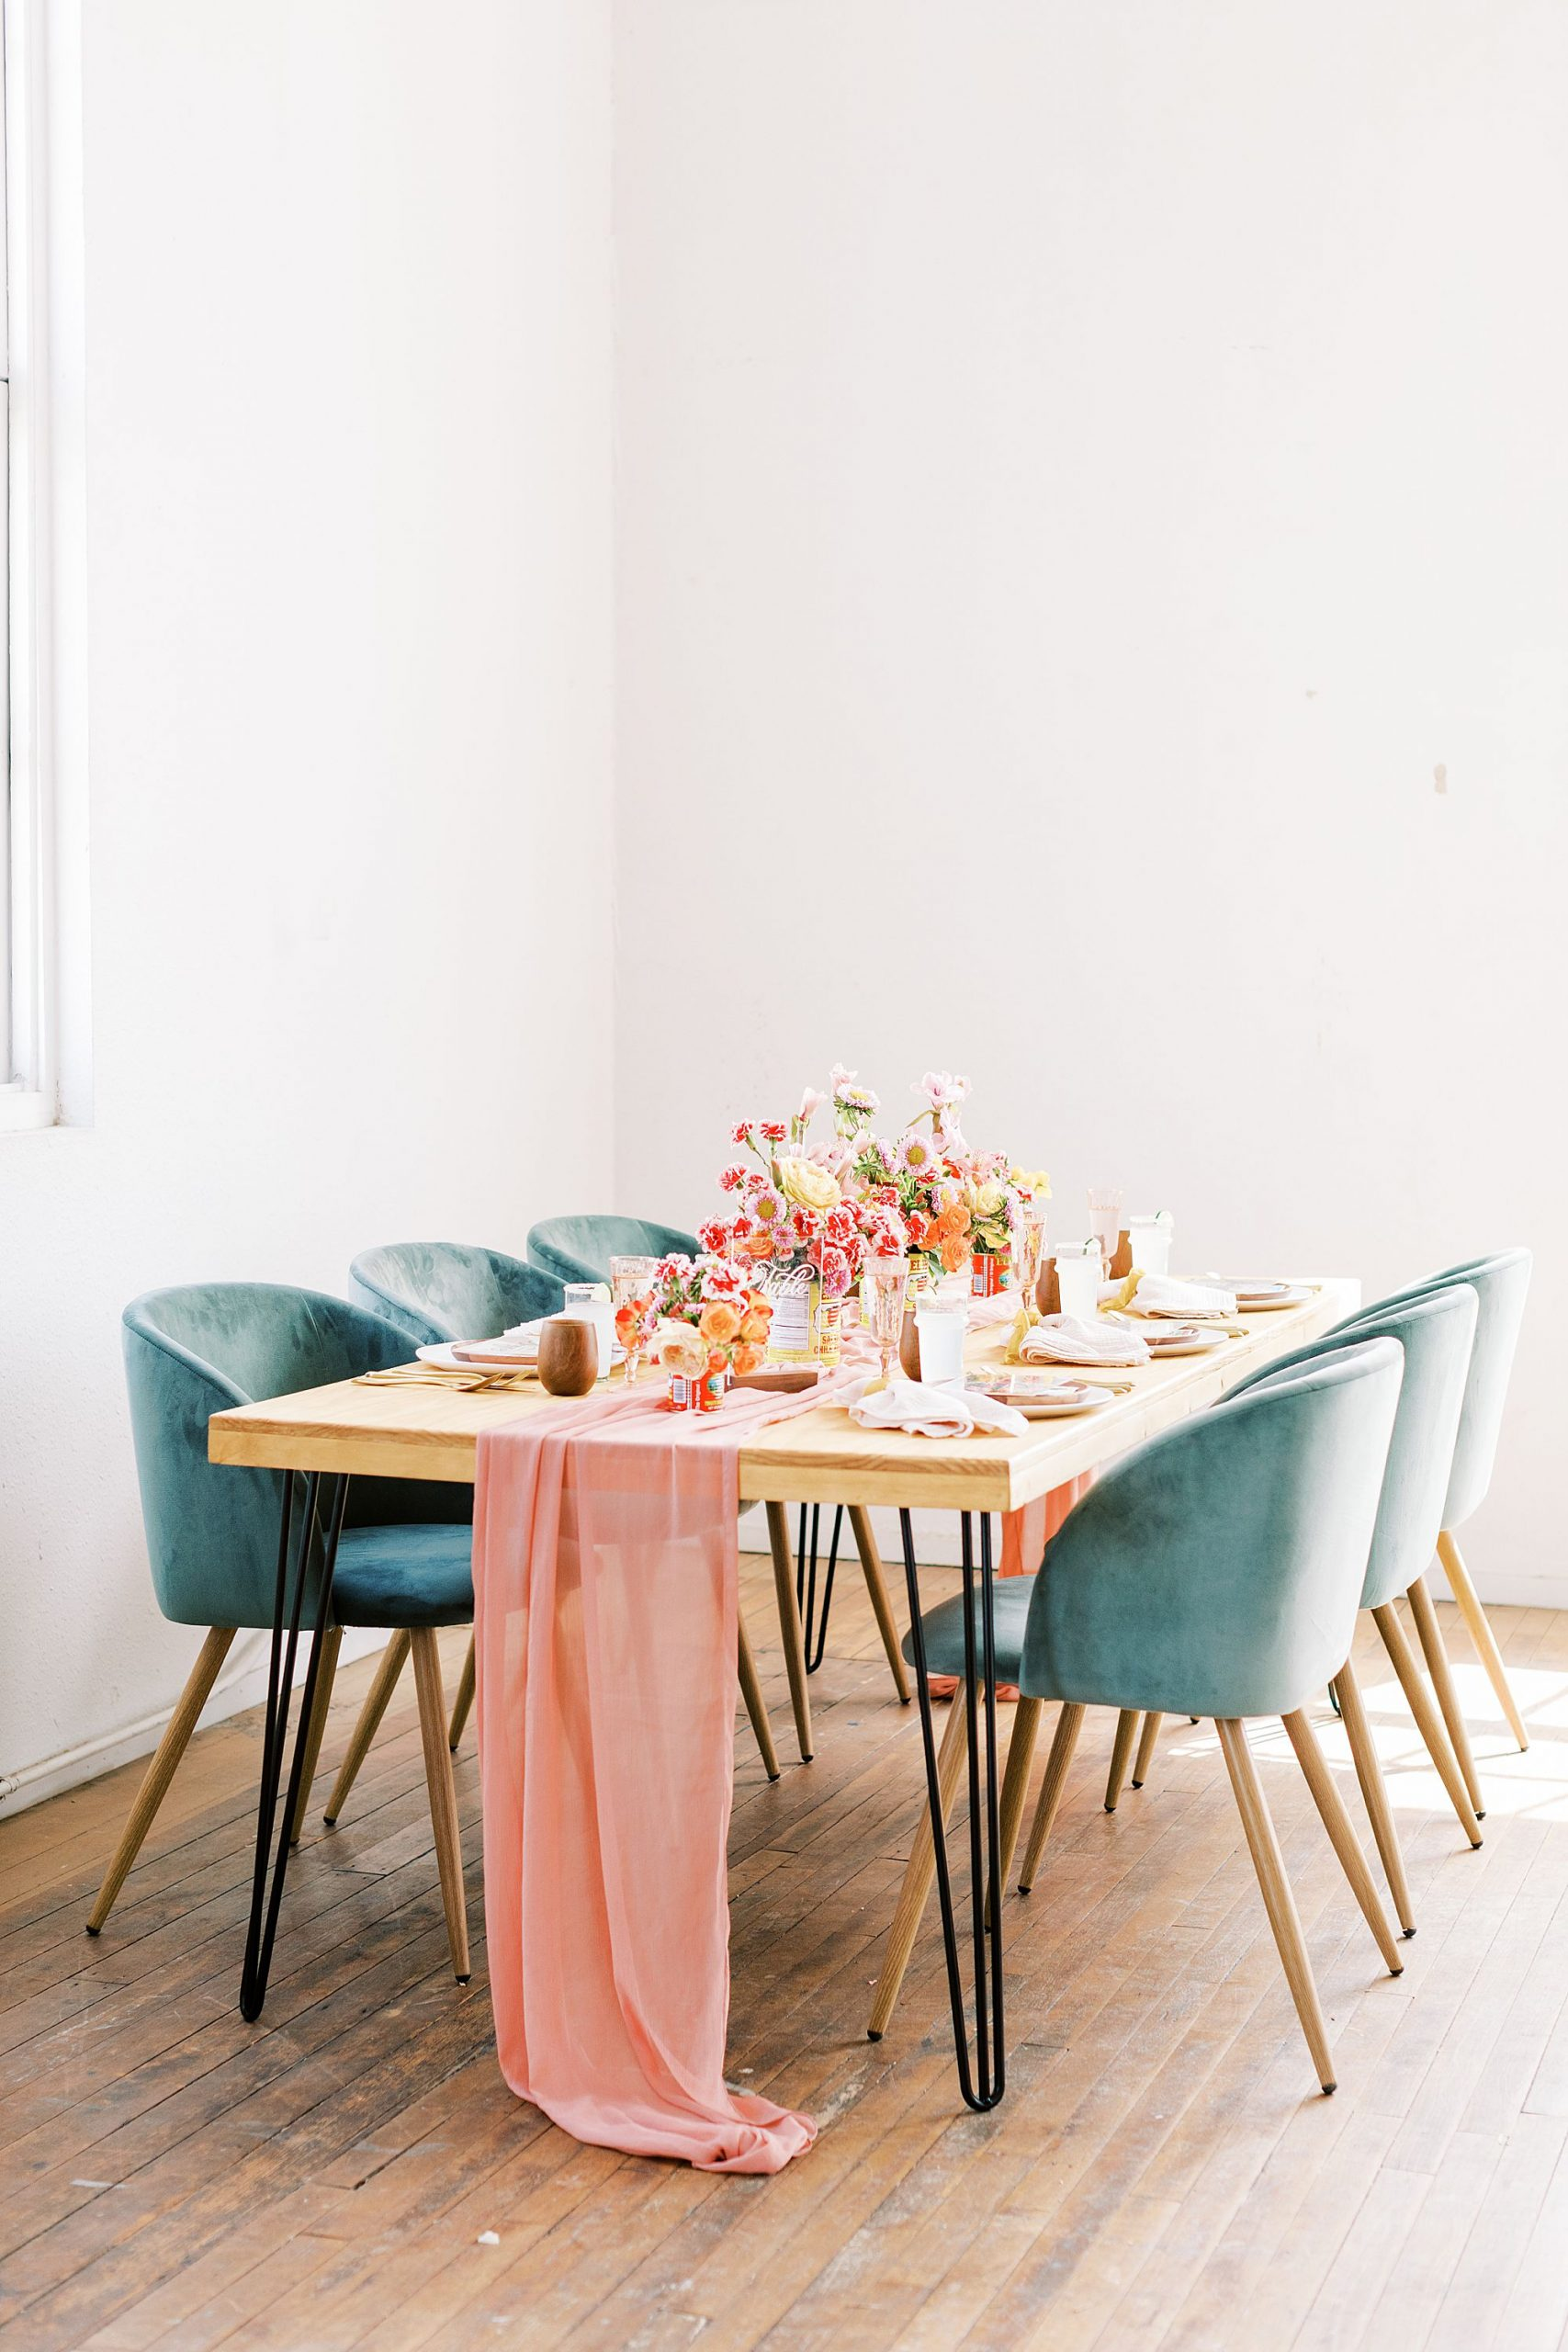 Cinco De Mayo Inspiration for Your FIesta - Party Crush Studio and Ashley Baumgartner_0013.jpg